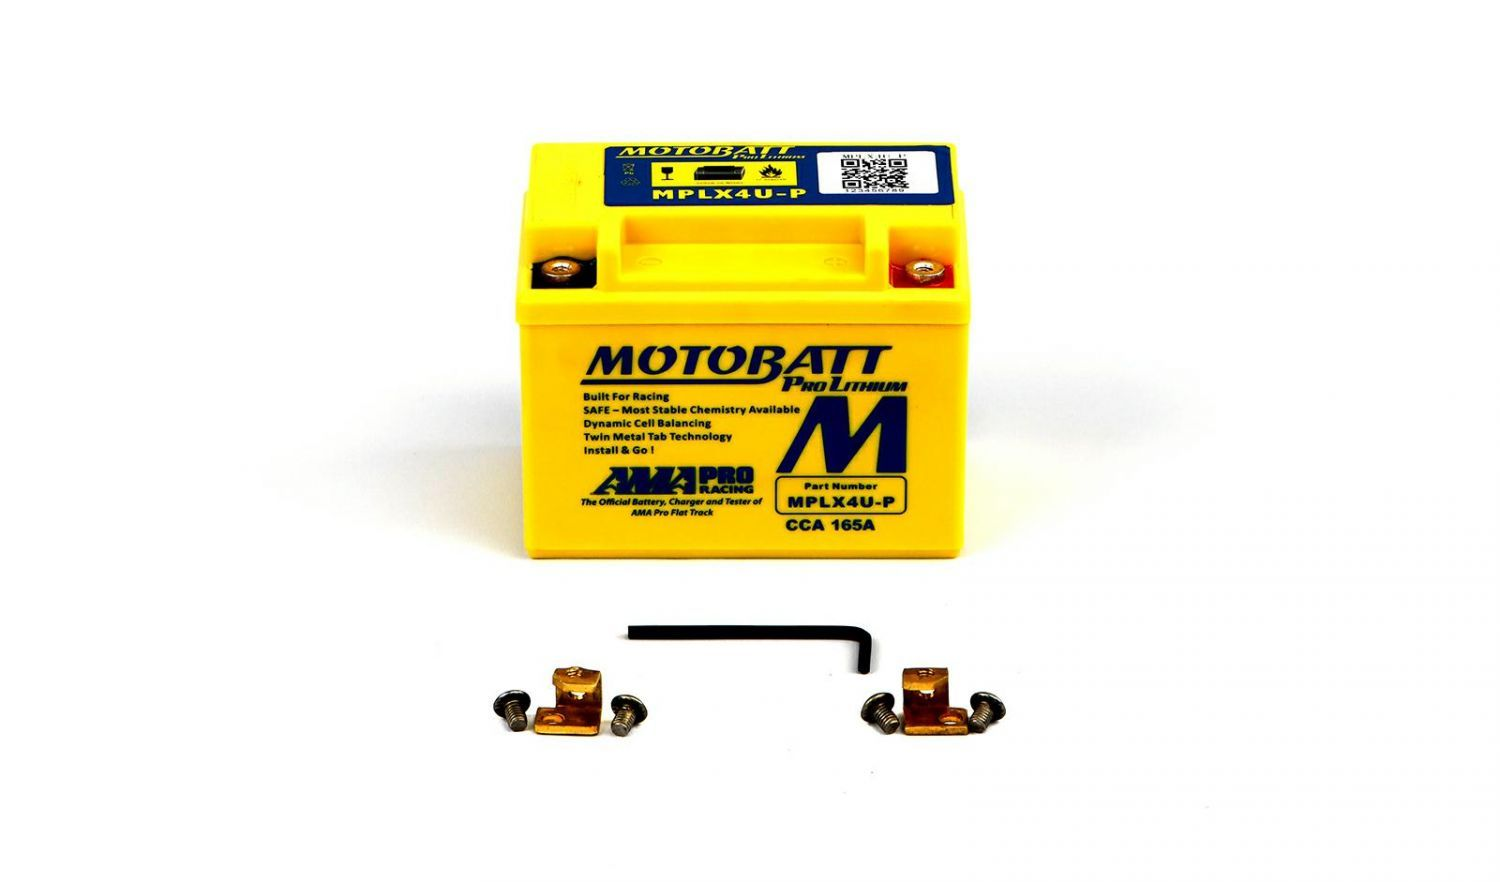 Motobatt Lithium Batteries - 501045ML image